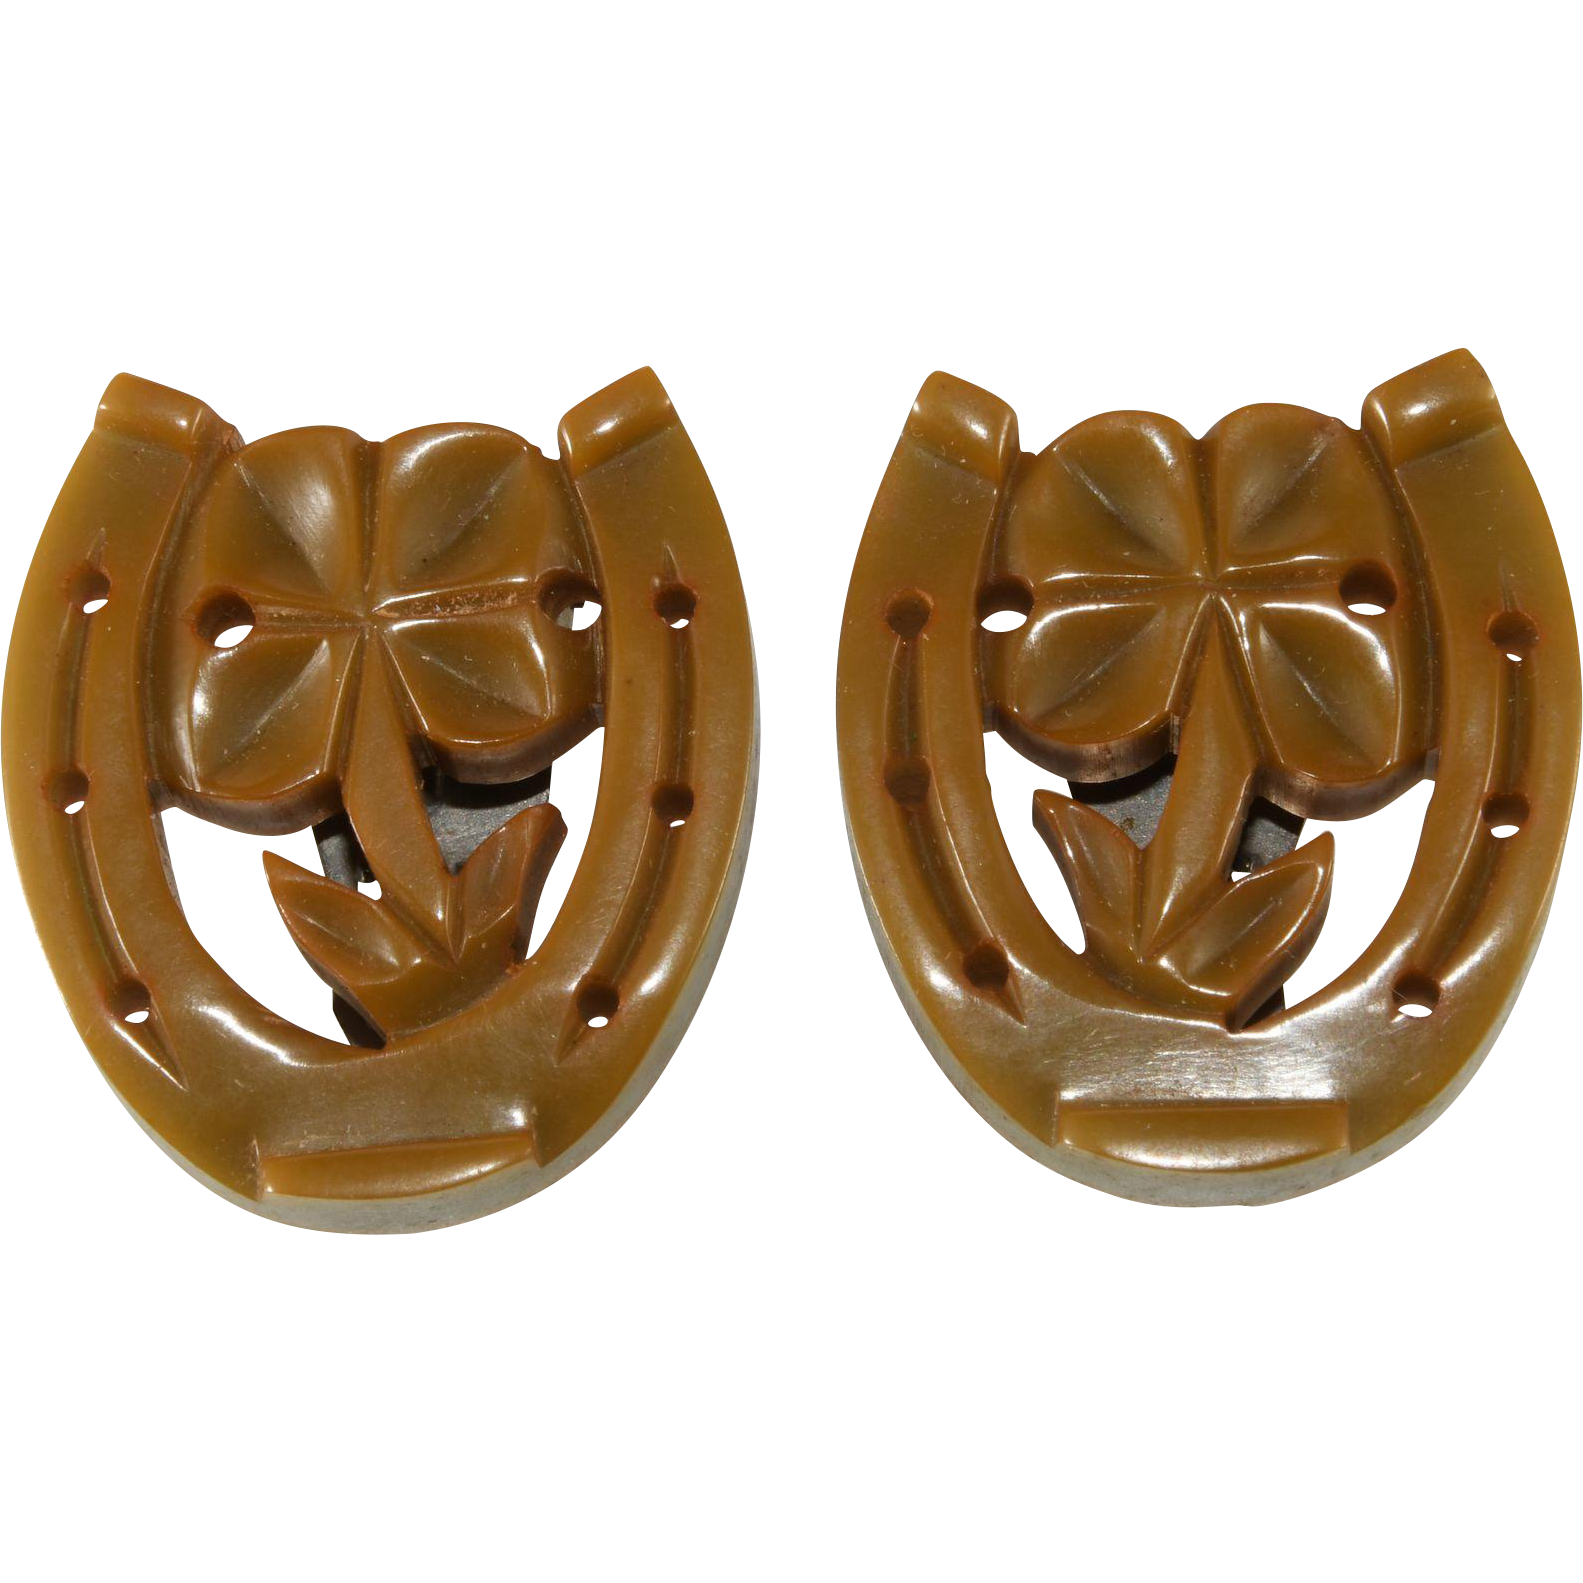 Lucky Horseshoe Four Leaf Clover Bakelite Dress Clips Brooches